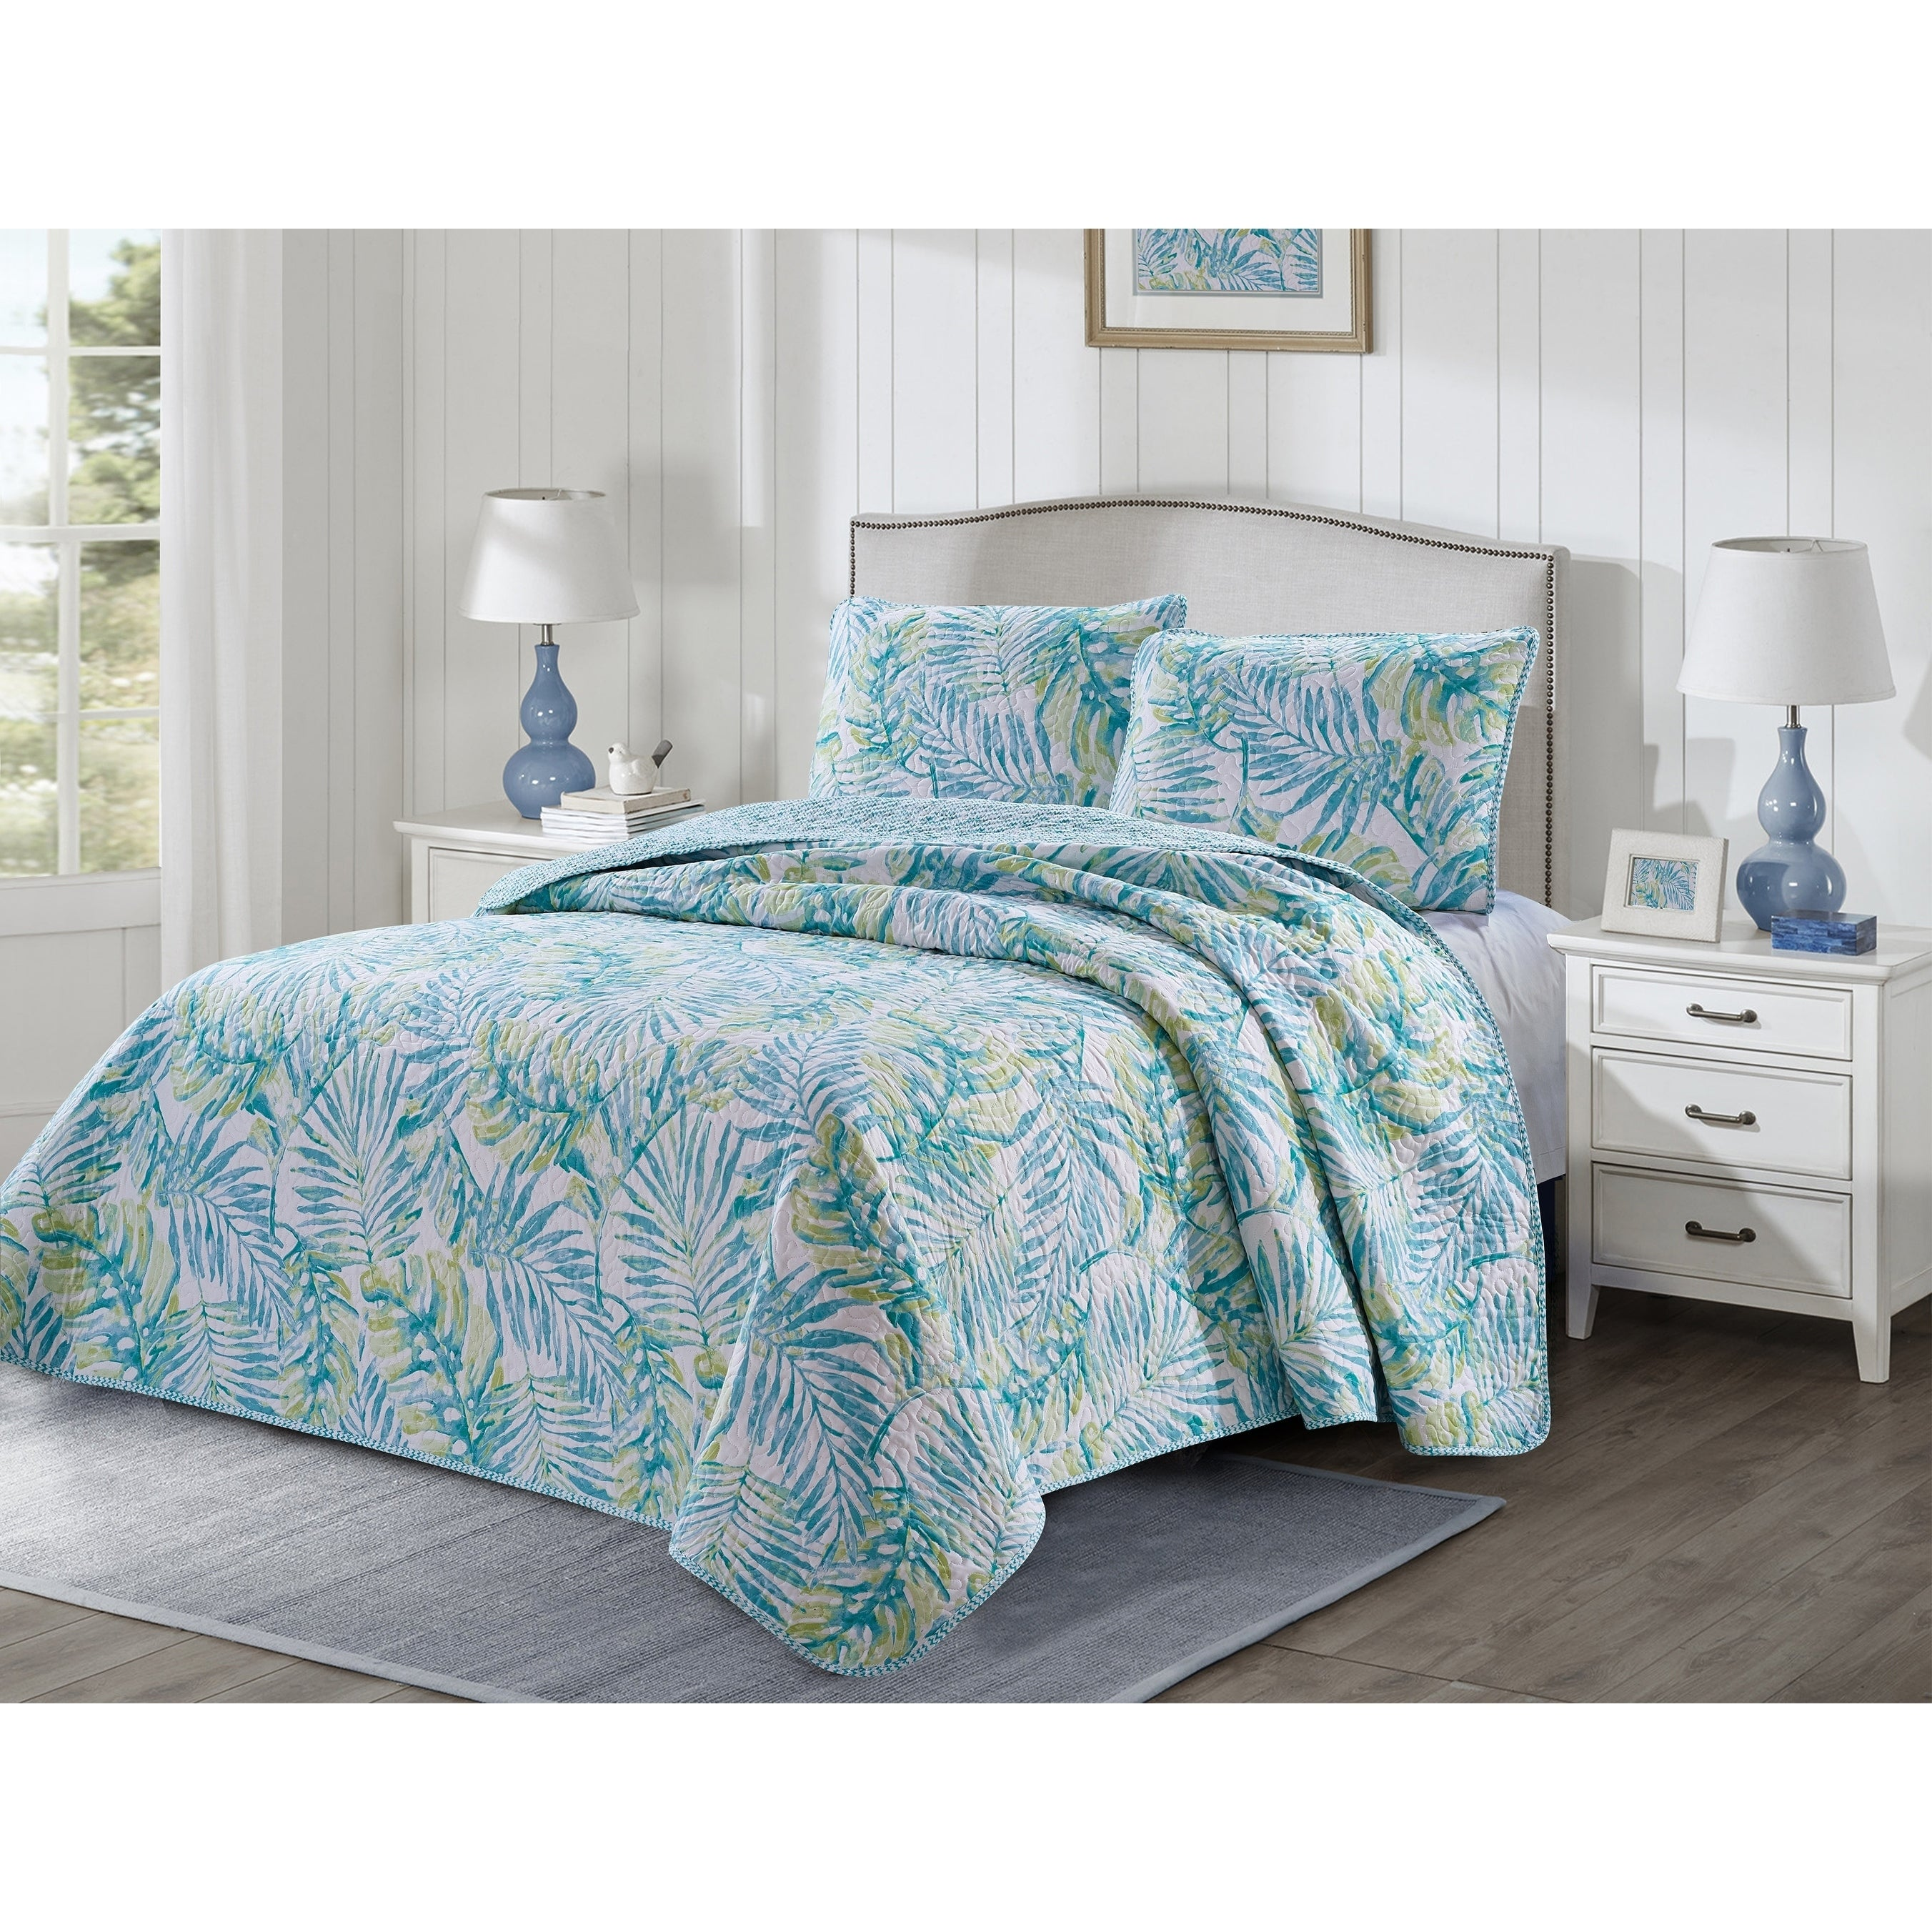 Tropical Teal, King 6 Piece Pinsonic Printed Bedding Bedspread Coverlet Quilt Sheet Set